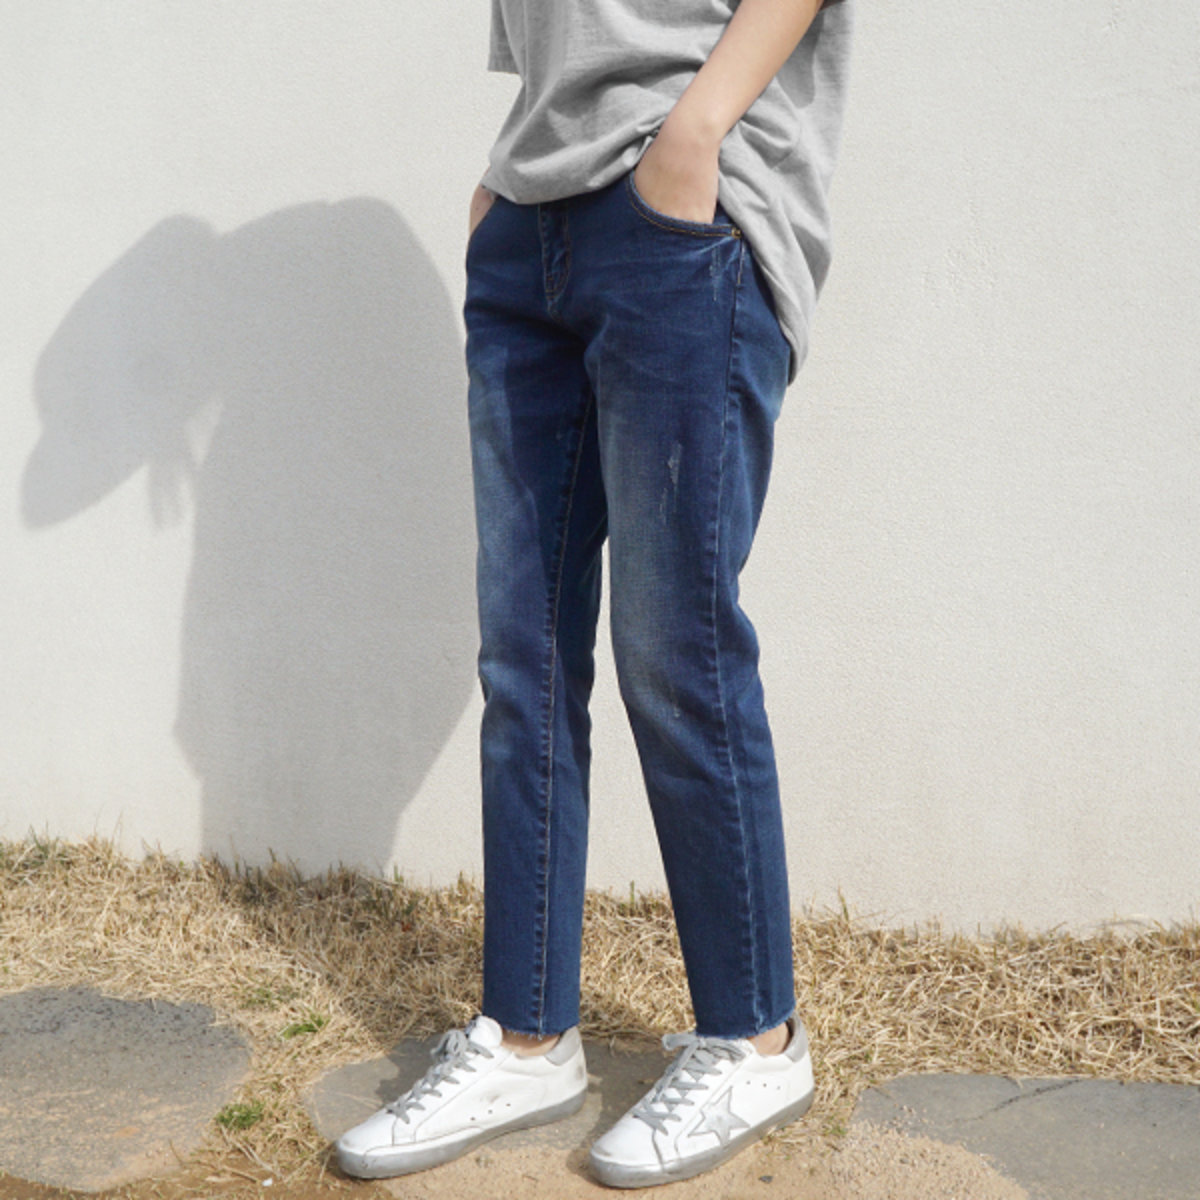 Na3007 Women'S Baggy Jeans